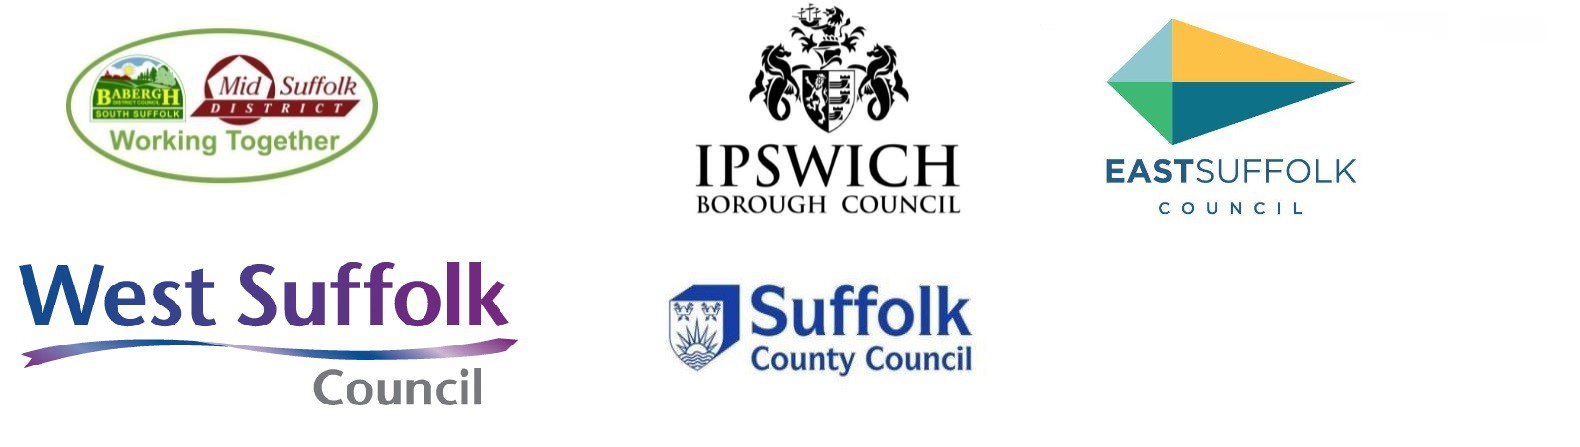 Suffolk County, District and Borough Council logos